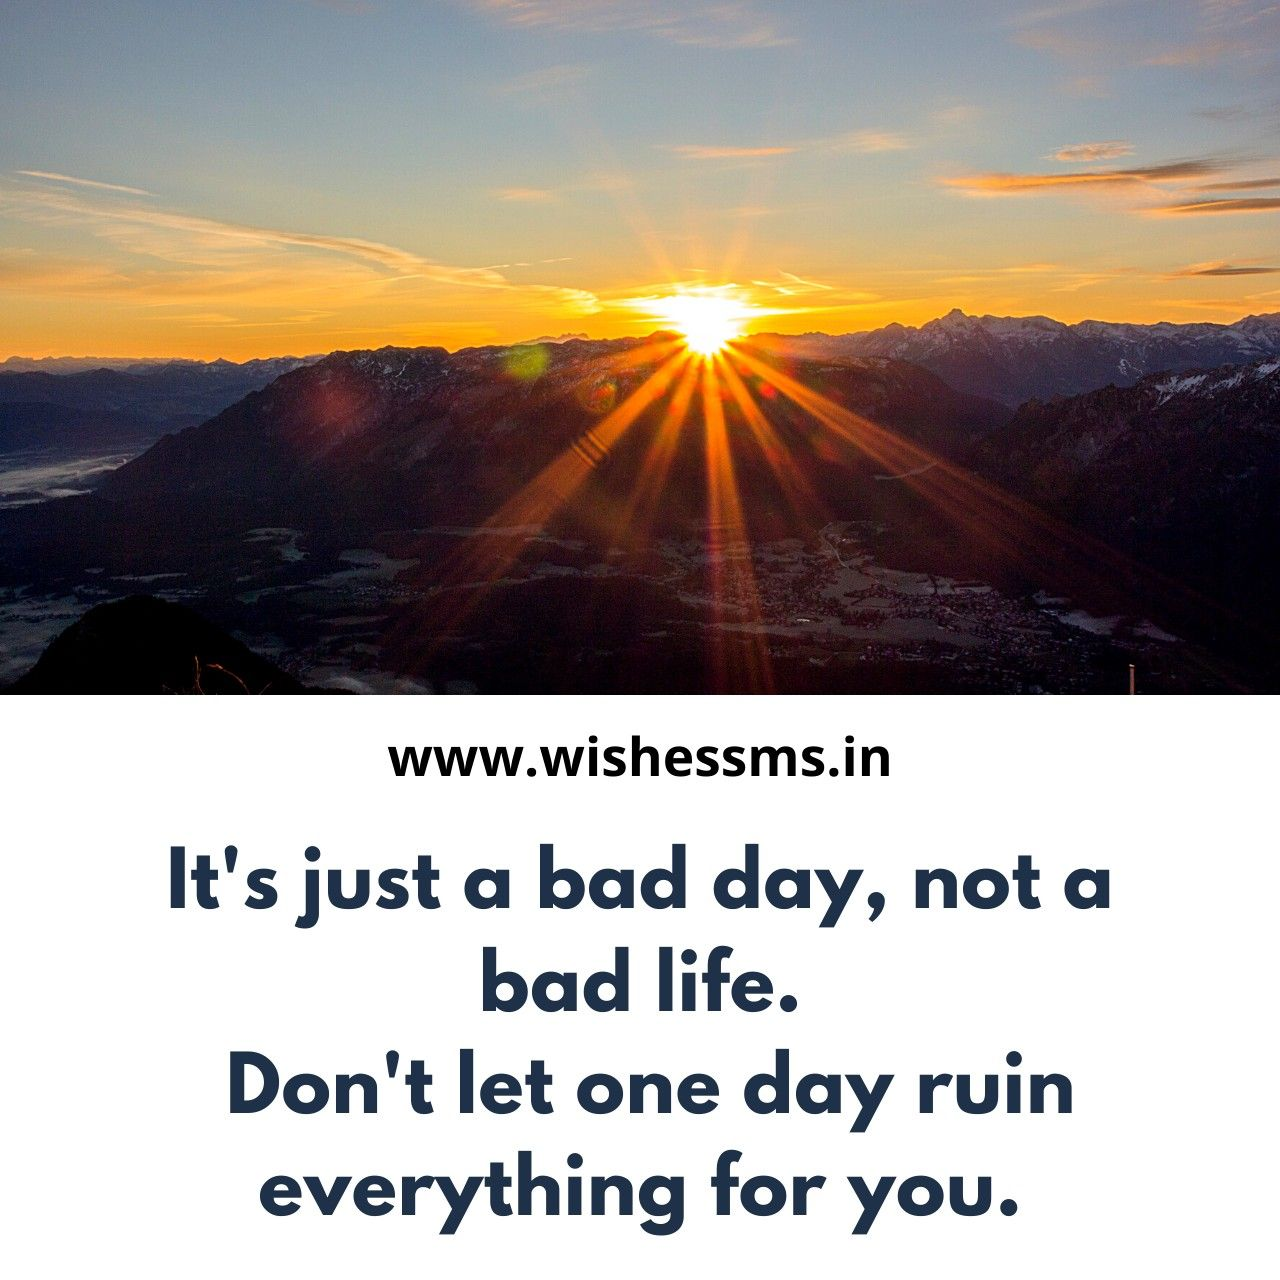 Two Line Motivational Quotes In English Bad Life Motivational Quotes In English Motivational Quotes